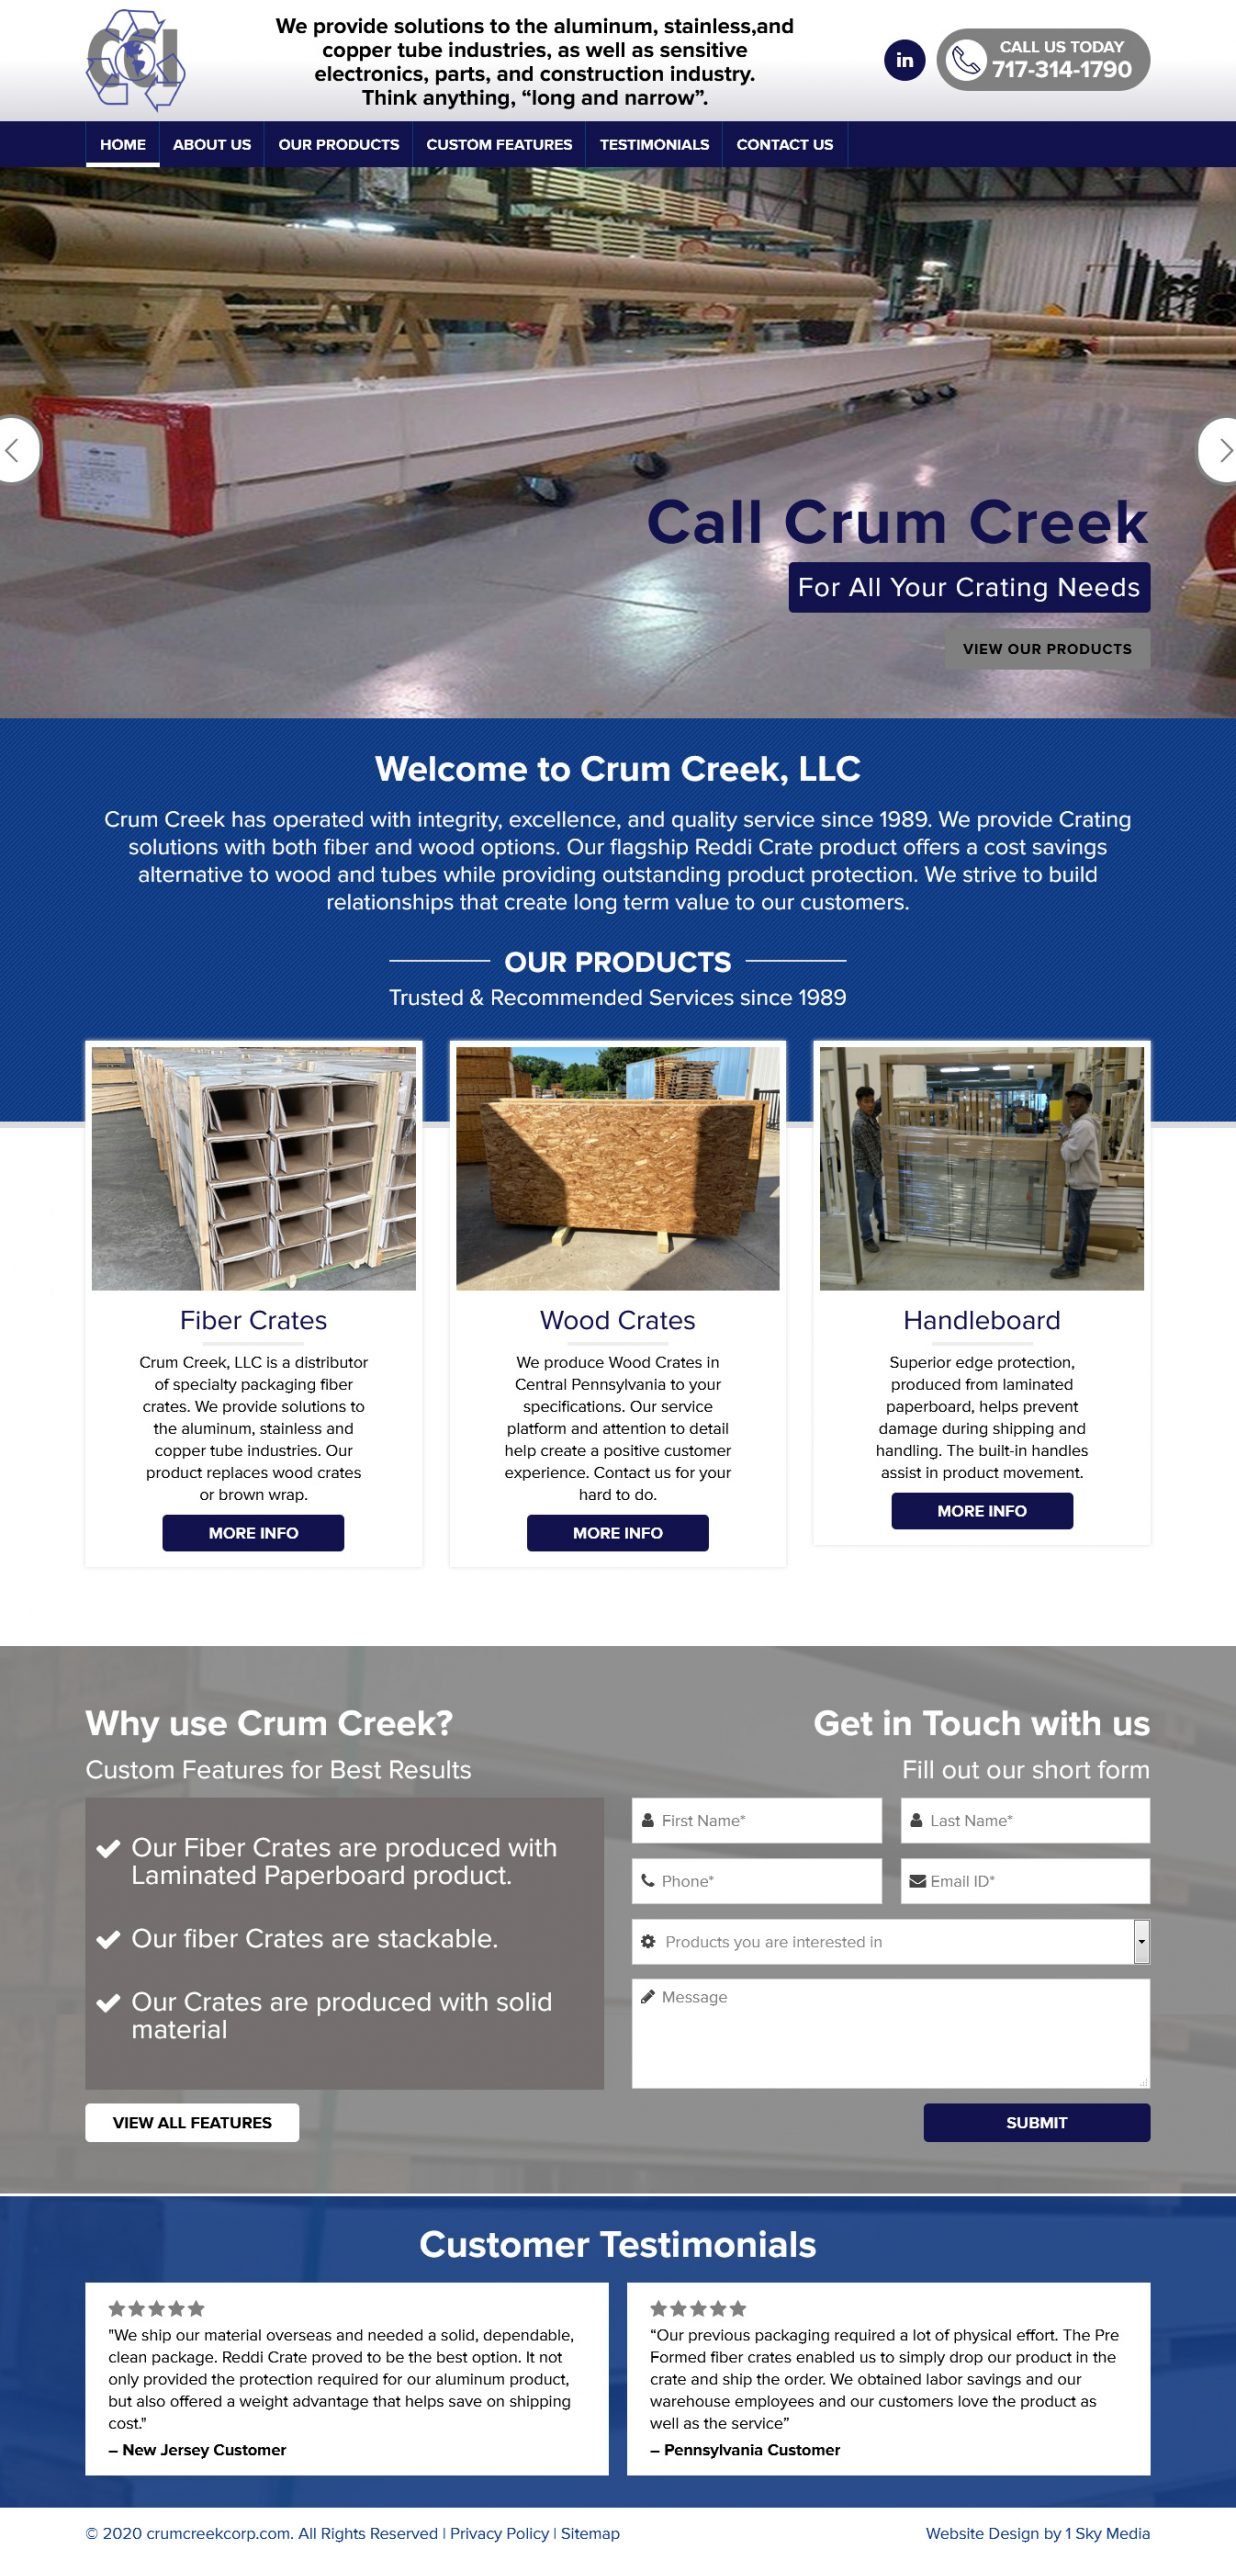 Crum Creek Website Design